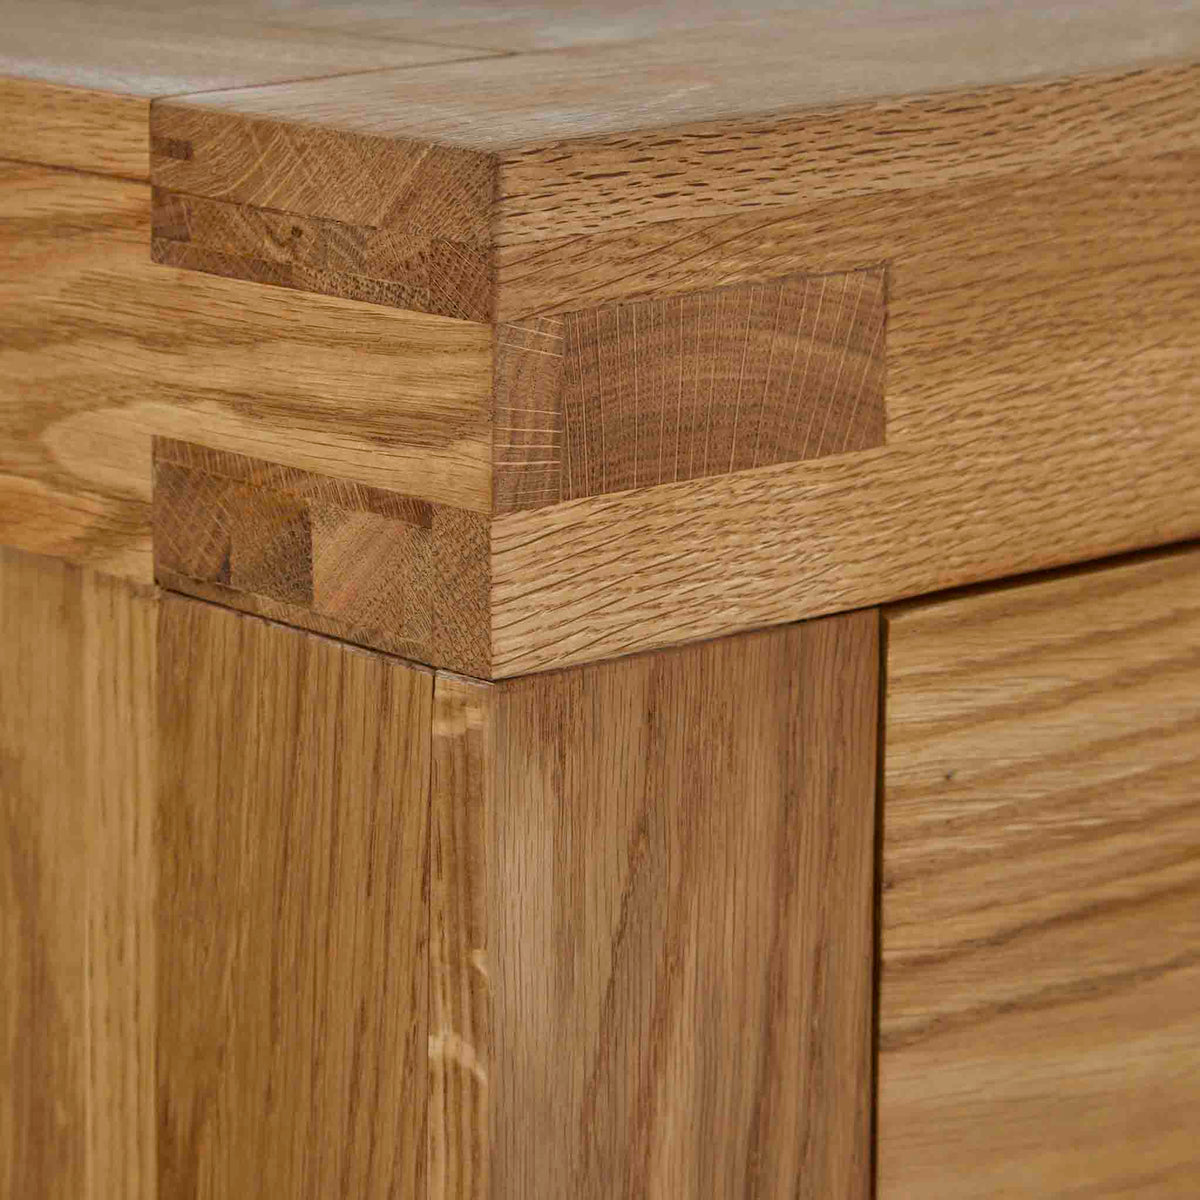 Abbey Grande Oak 3 Drawer Bedside Table - Showing tenon joint at top corner of bedside